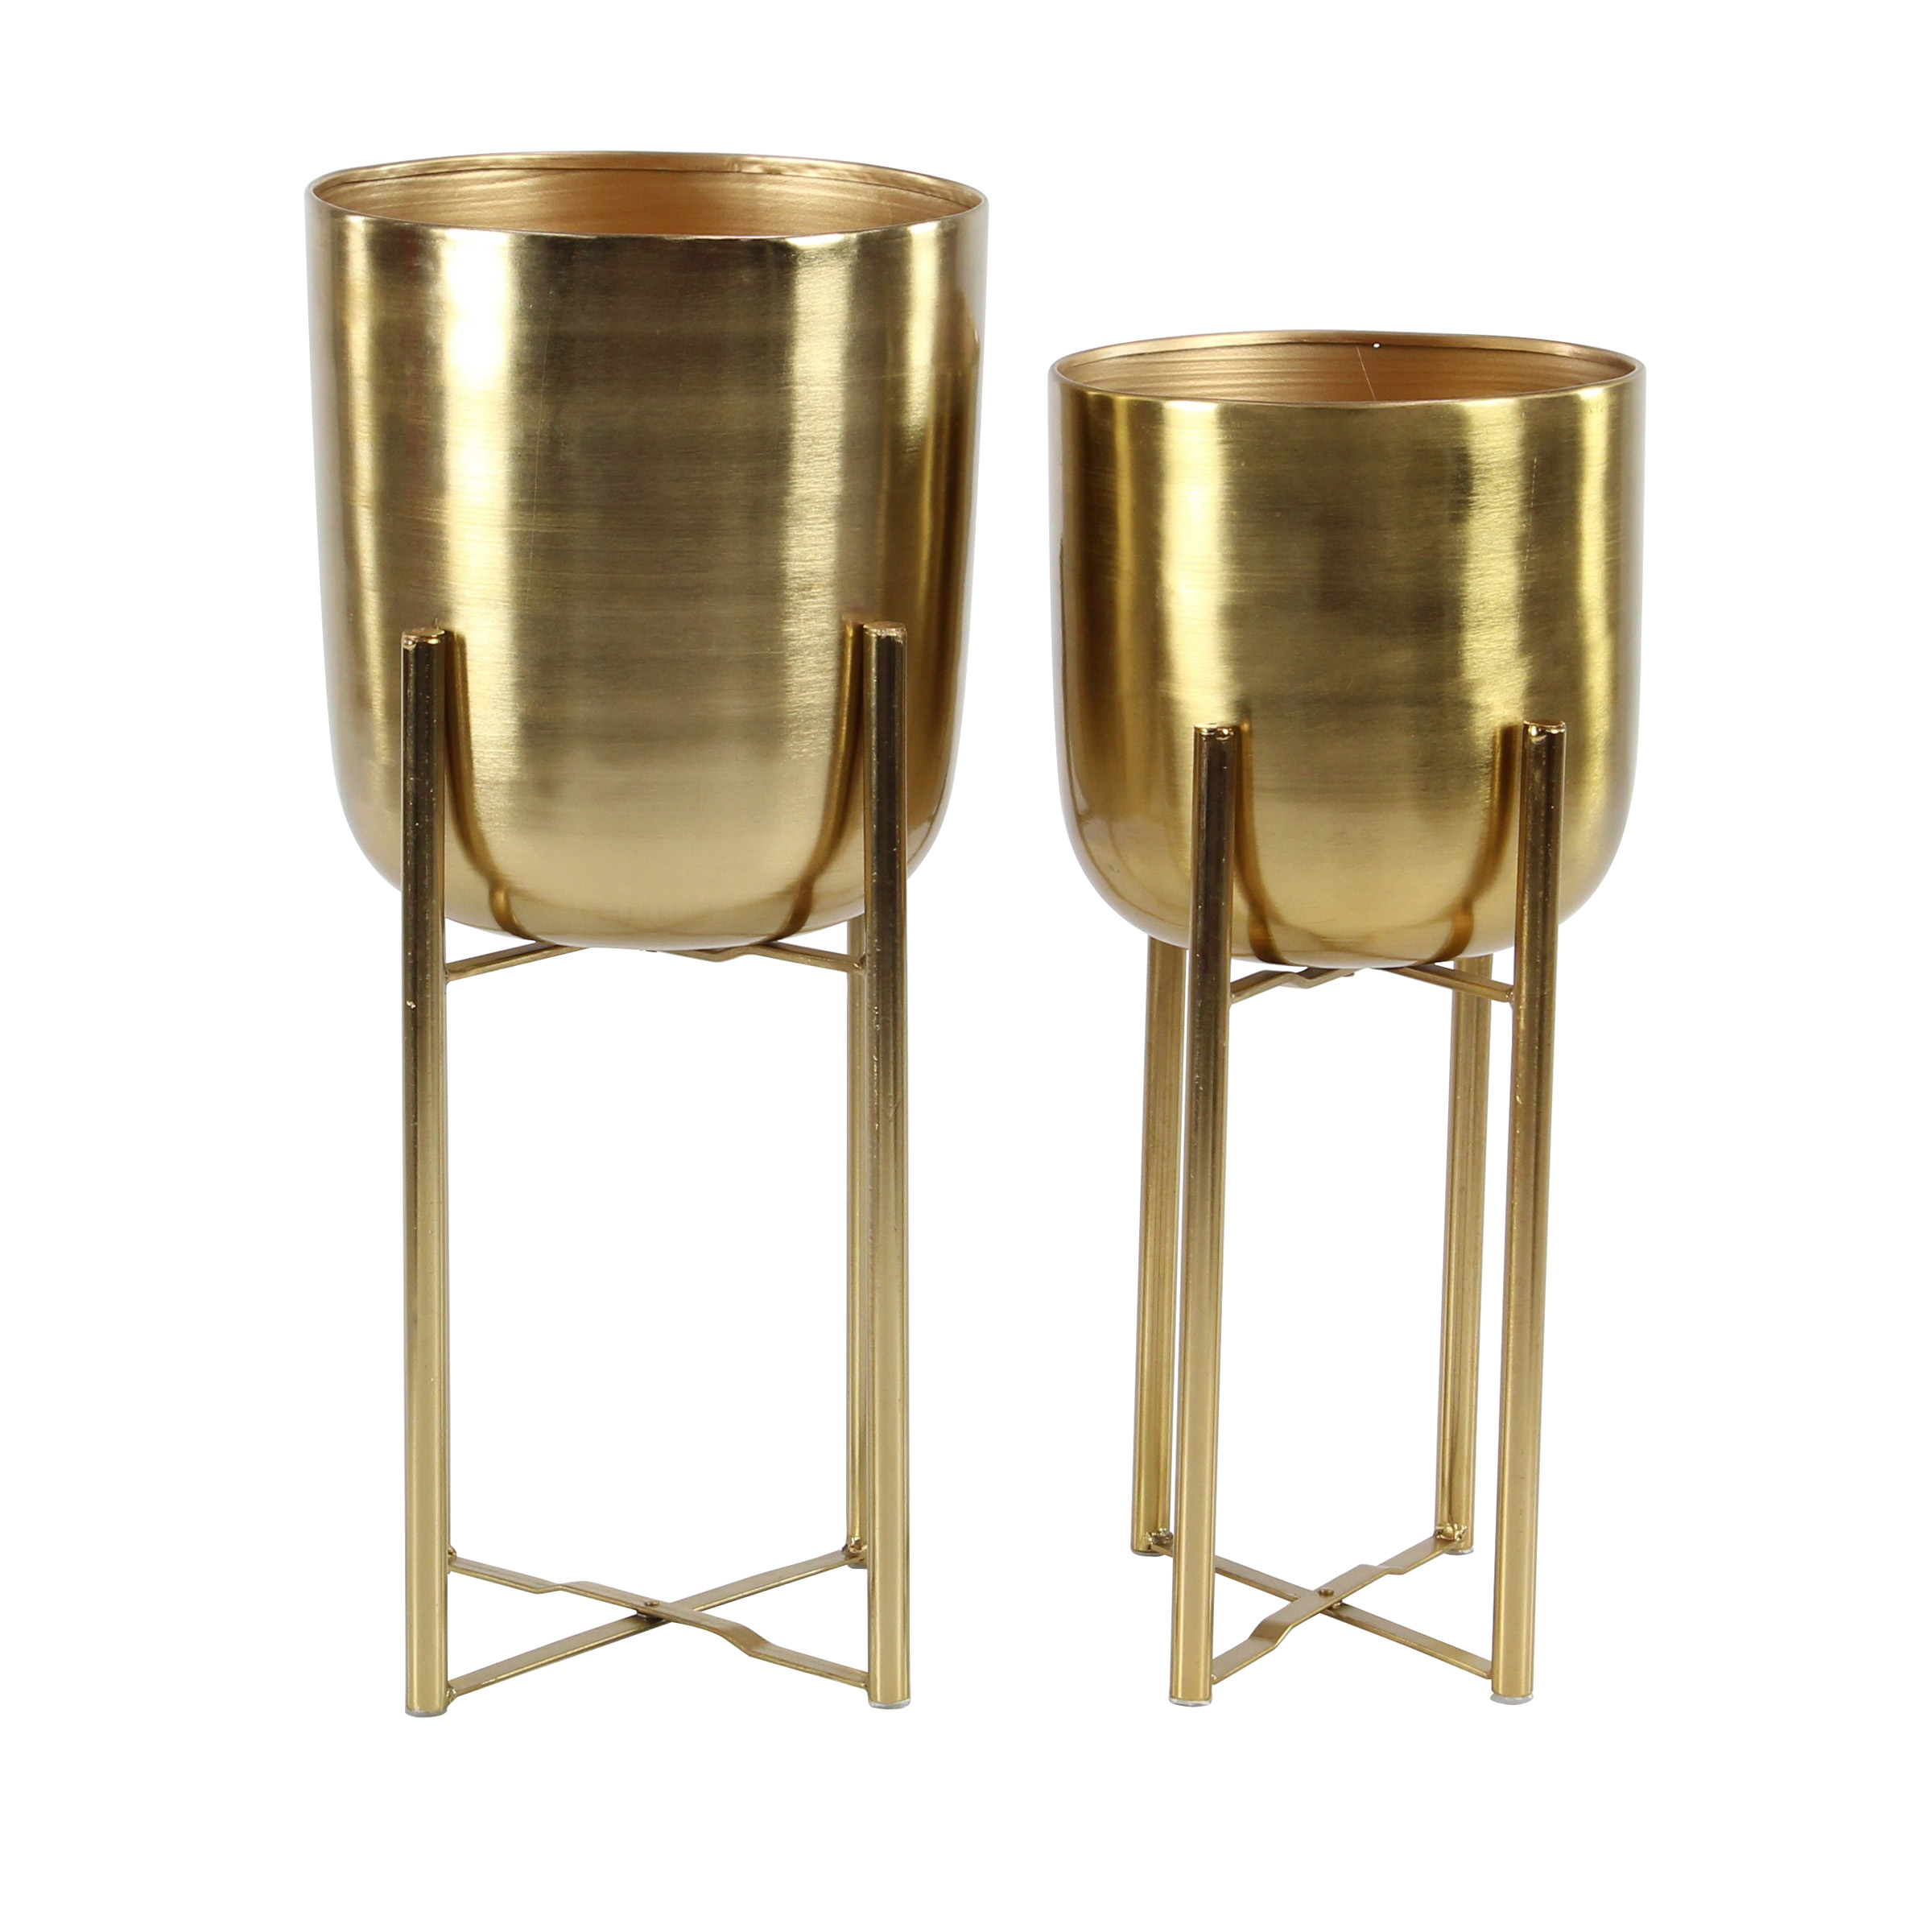 Decmode Contemporary 19 And 22 Inch Gold Iron Planters With Stands - Set of 2